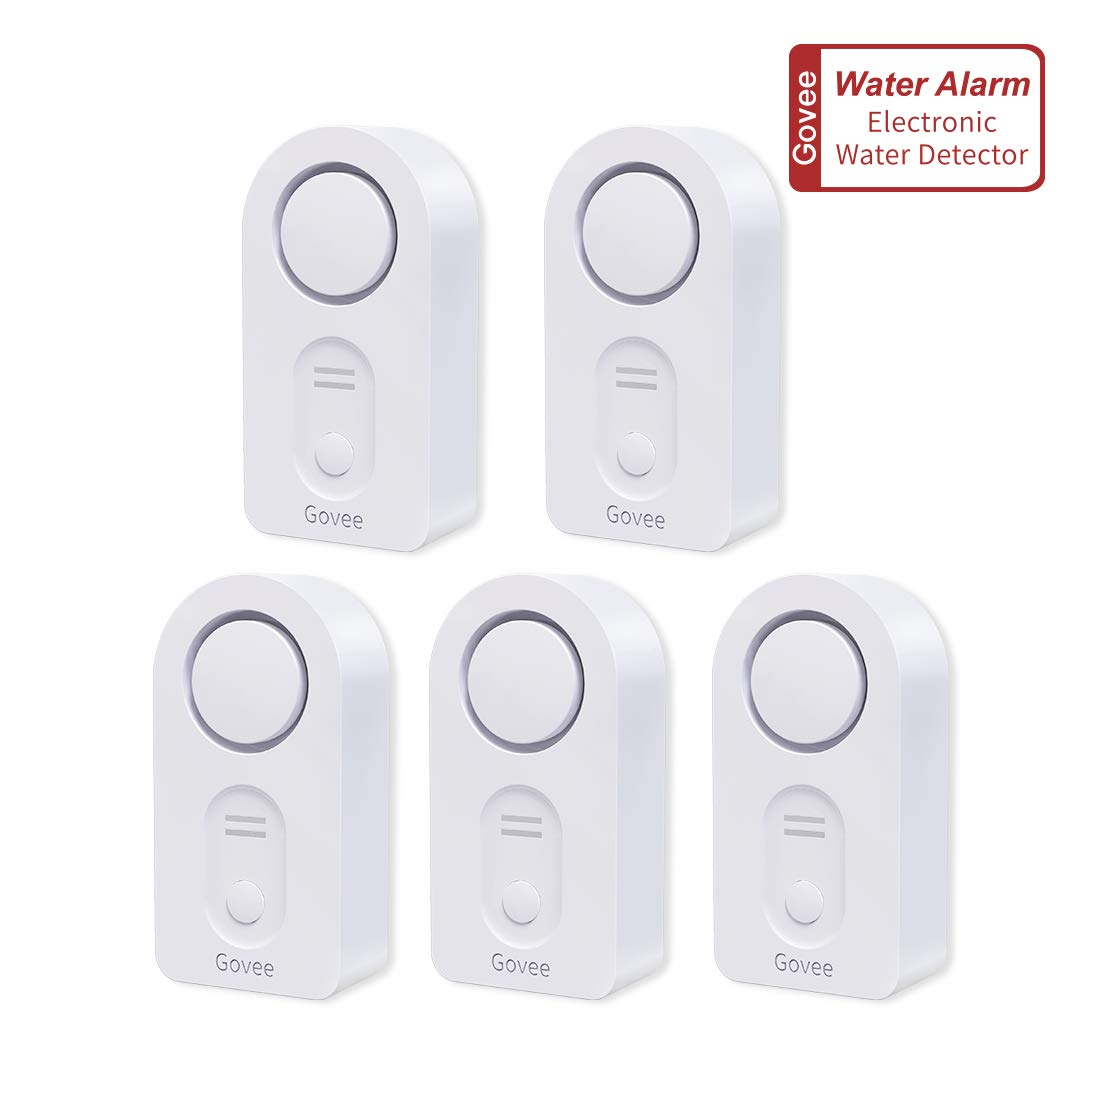 Govee Water Detectors, Wireless Water Leak Detector with 100 DB Loud Alarm, Water Sensor with Sensitive Leak Probes, Water Sensor Alarm for Kitchen Bathroom Basement Floor(Battery Included)-5 Pack by Govee